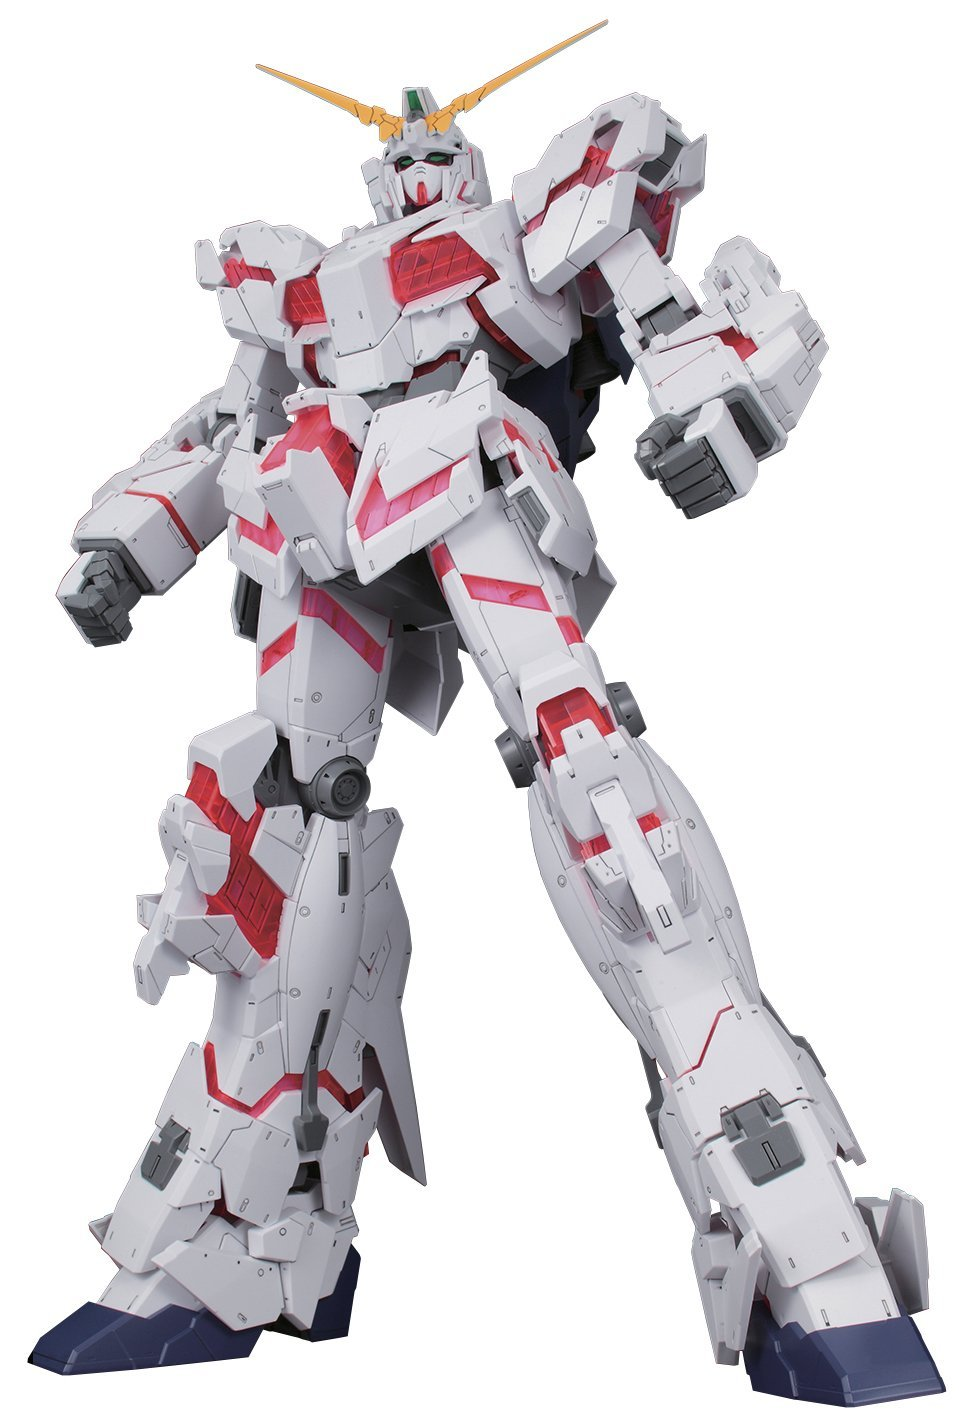 Gundam Mega Size 1/48 Scale Model Kit: Unicorn Gundam (Destroy Mode)